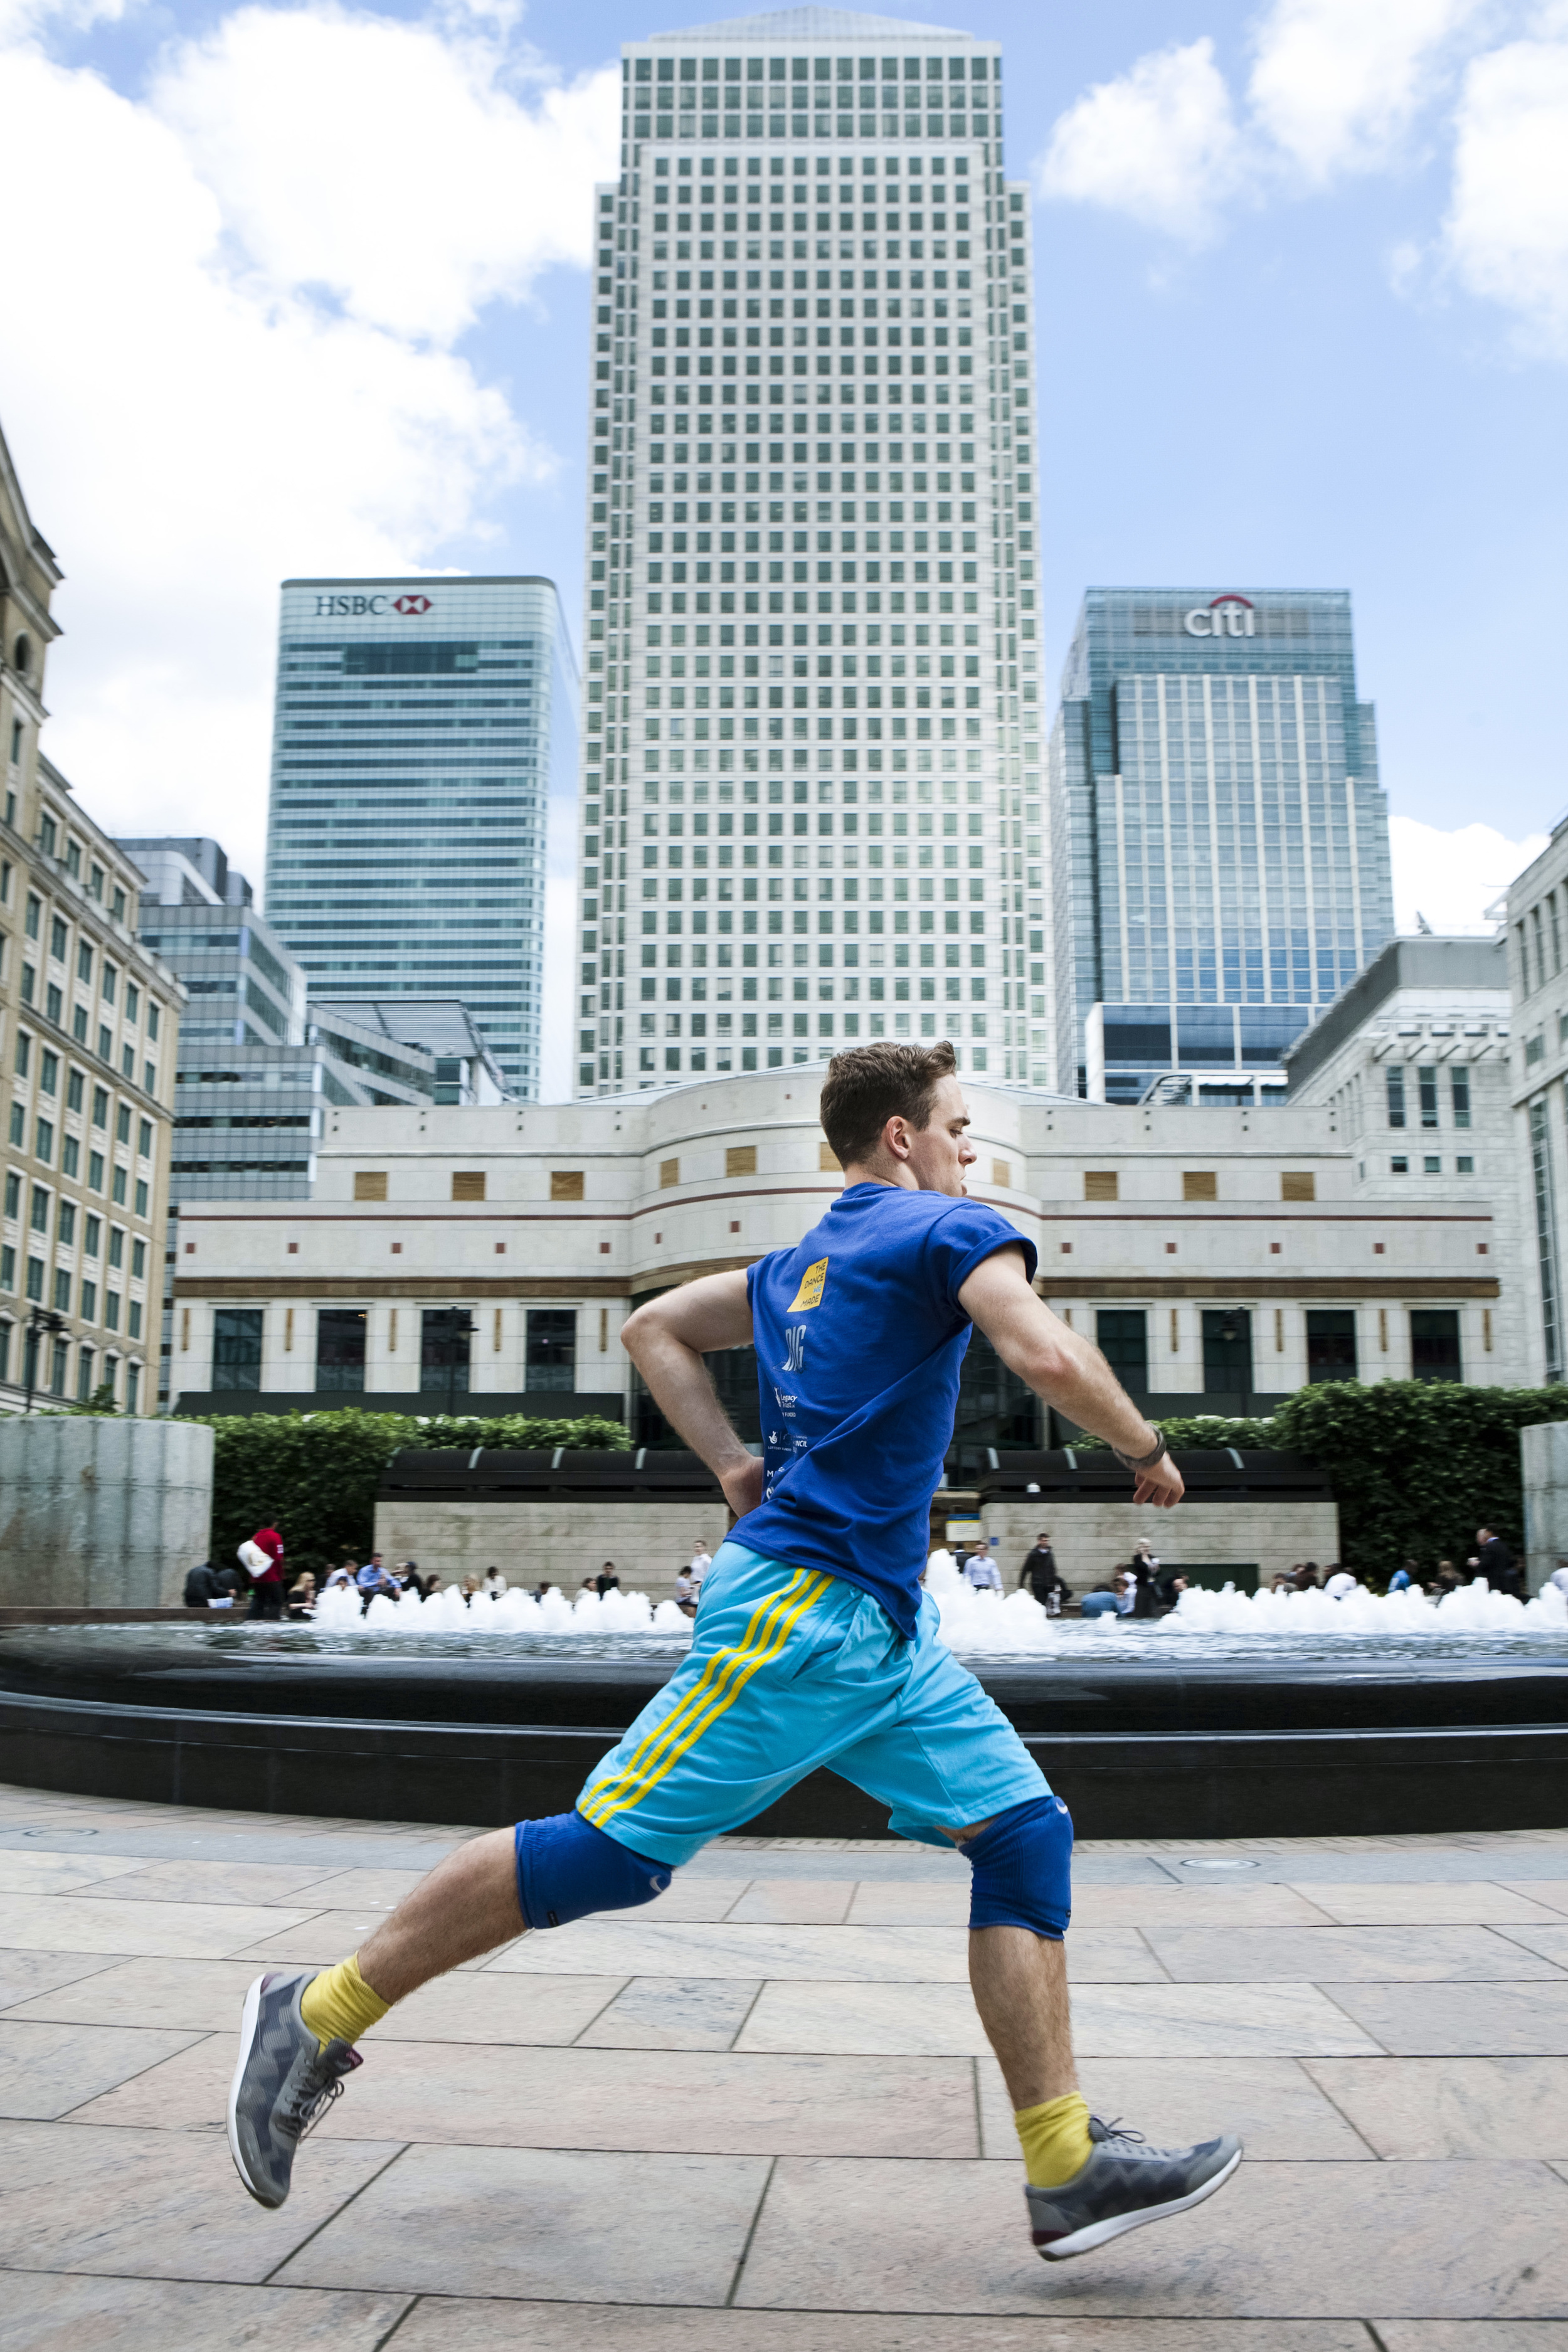 The Dance WE Made in London by Alicia Clark (2012)